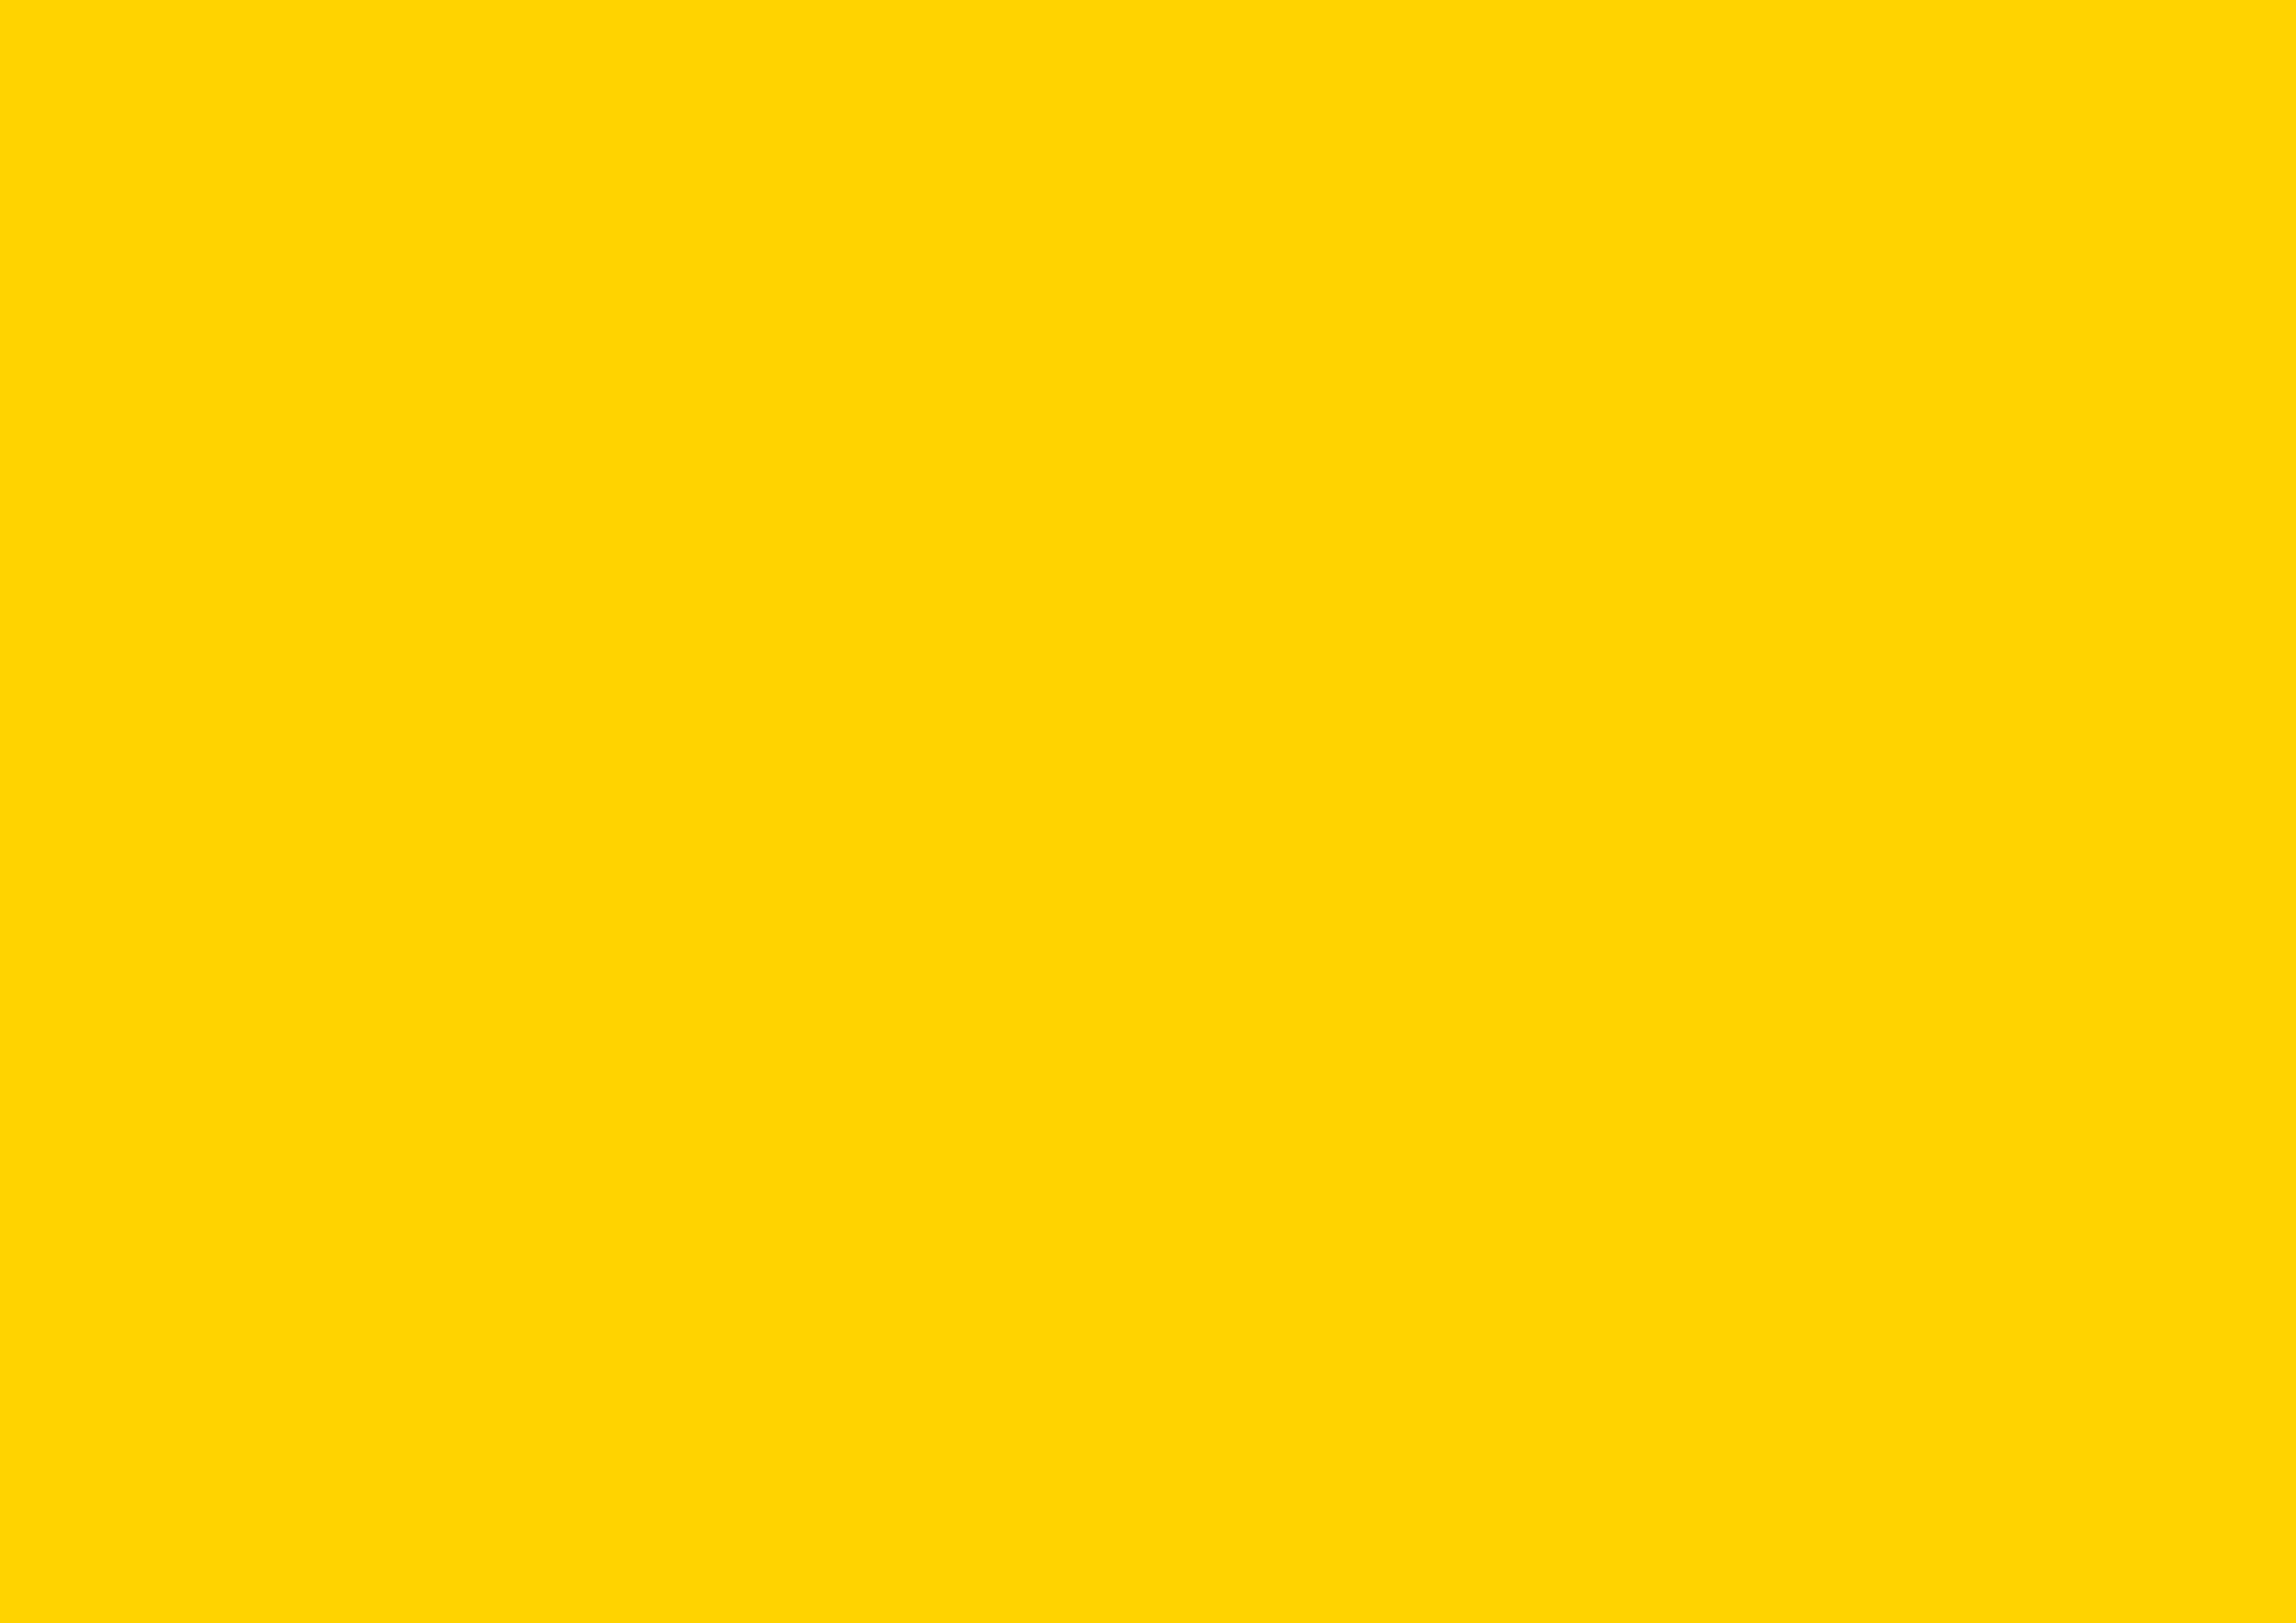 3508x2480 Yellow NCS Solid Color Background